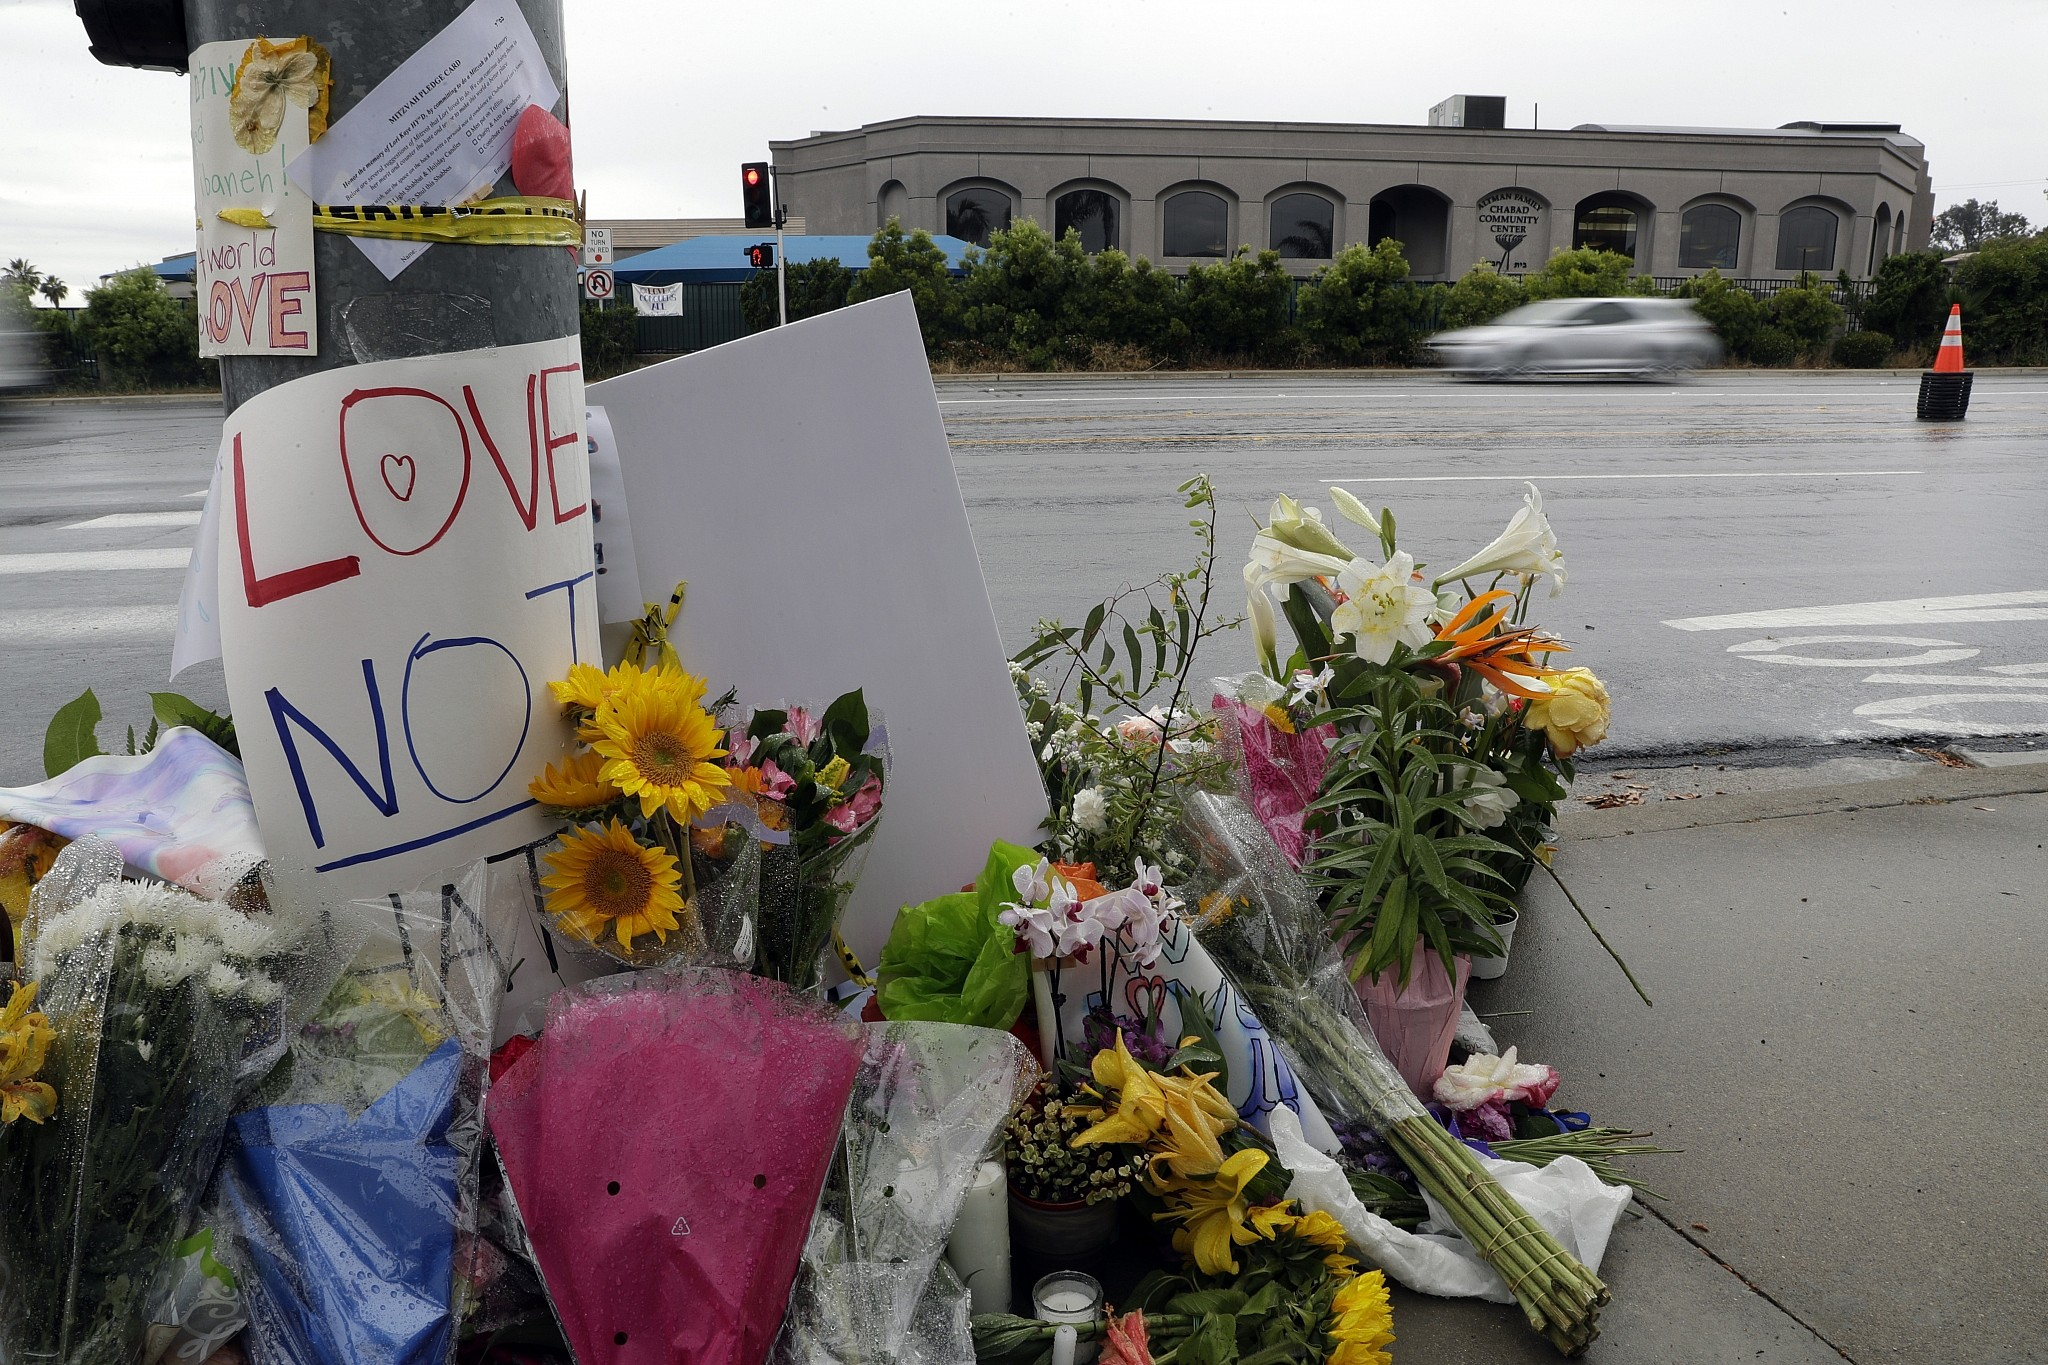 Poway synagogue killer was inspired by New Zealand attack, court